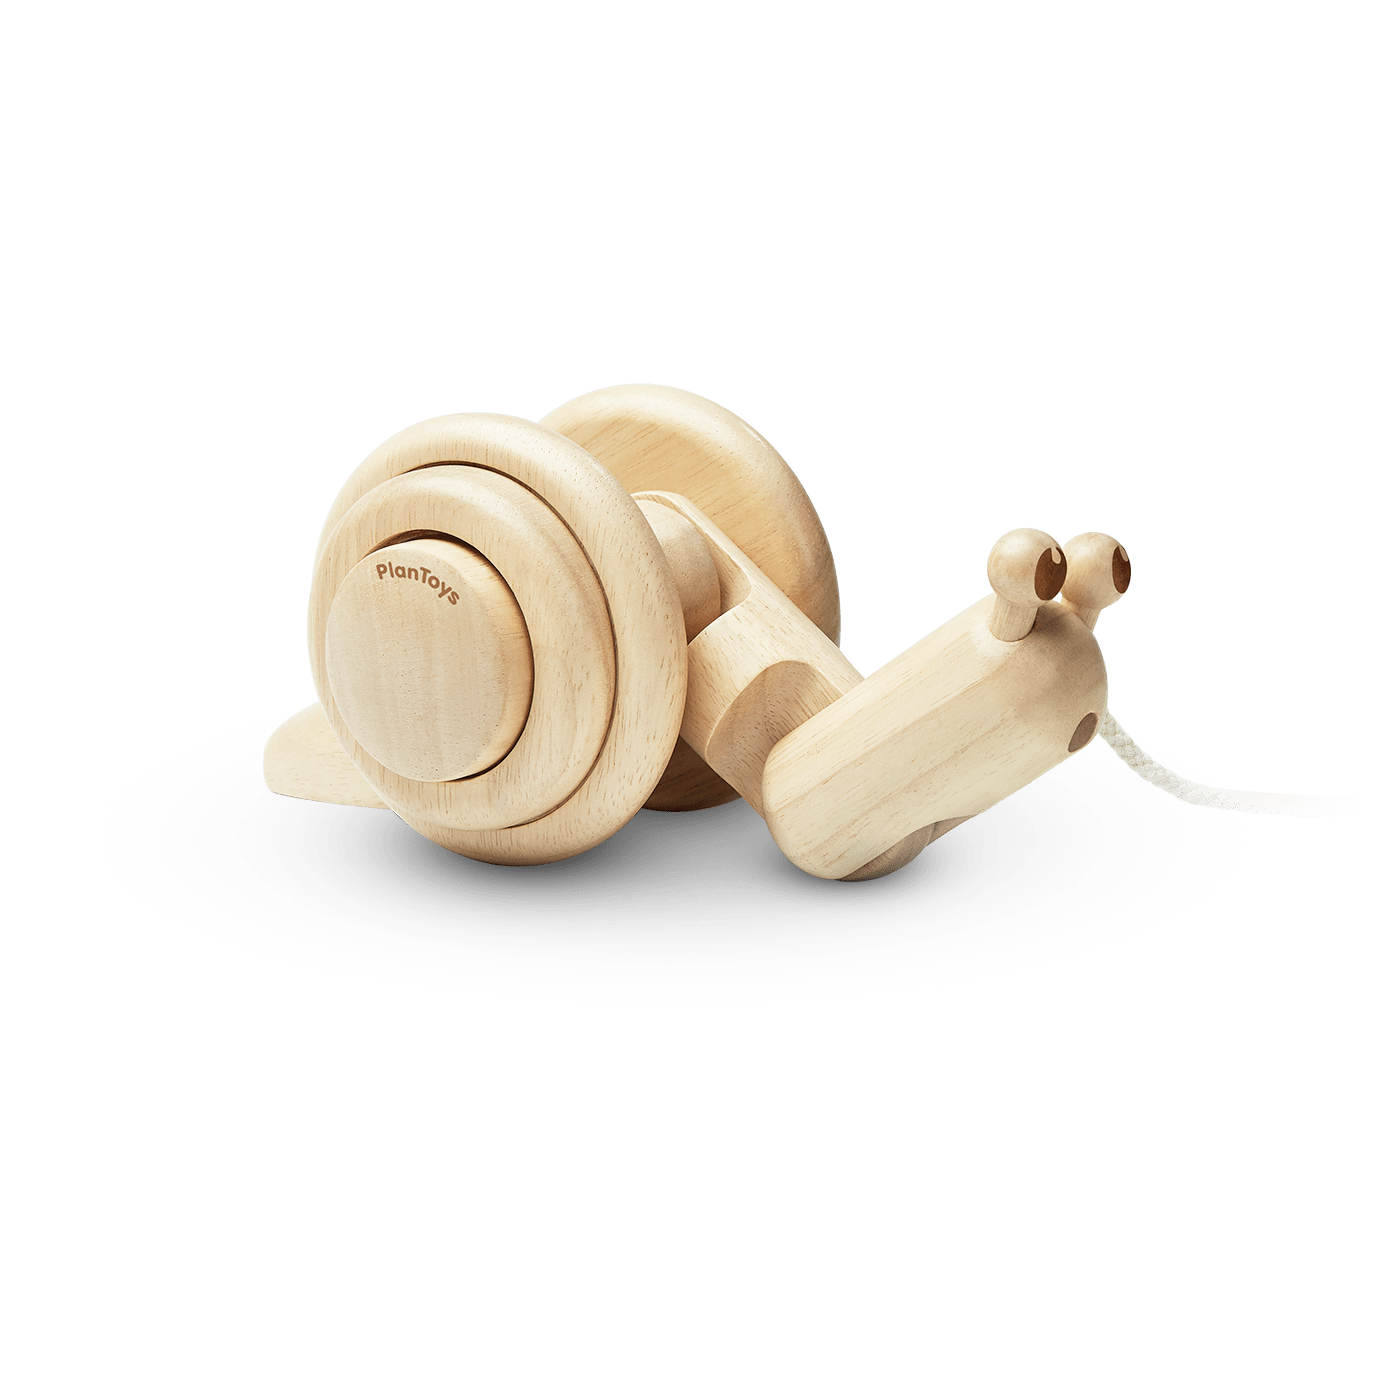 5722_PlanToys_PULL-ALONG_SNAIL-_NATURAL_Push_and_Pull_Coordination_Fine_Motor_Mathematical_Language_and_Communications_Visual_18m_Wooden_toys_Education_toys_Safety_Toys_Non-toxic_0.png